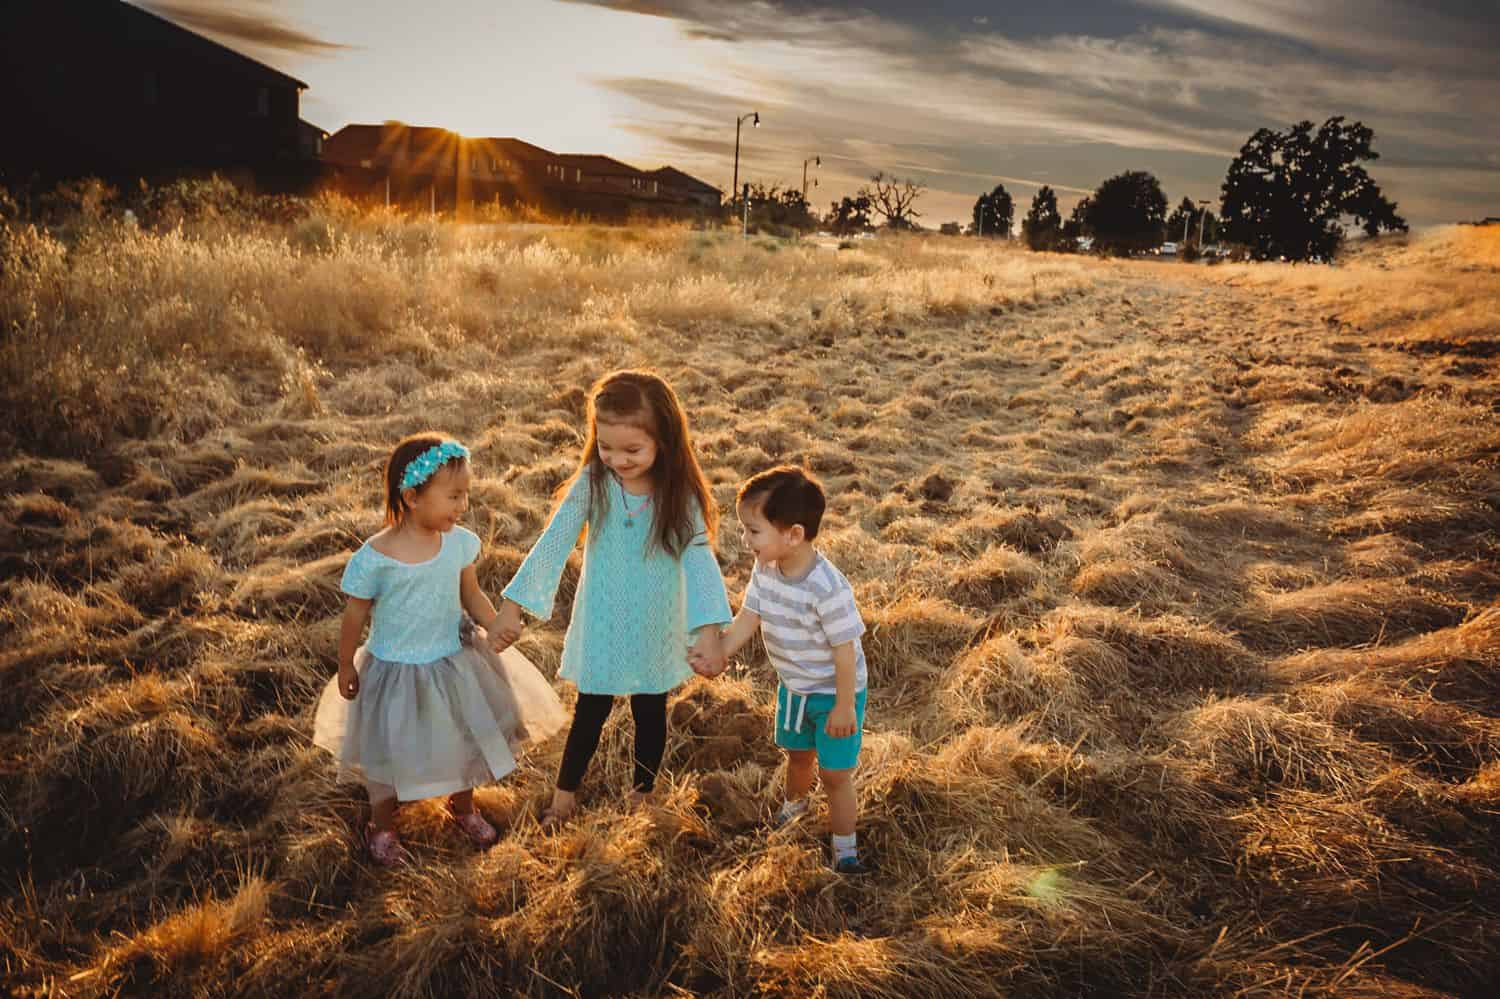 A young girl holds her younger siblings' hands as they walk through a field at sunset.